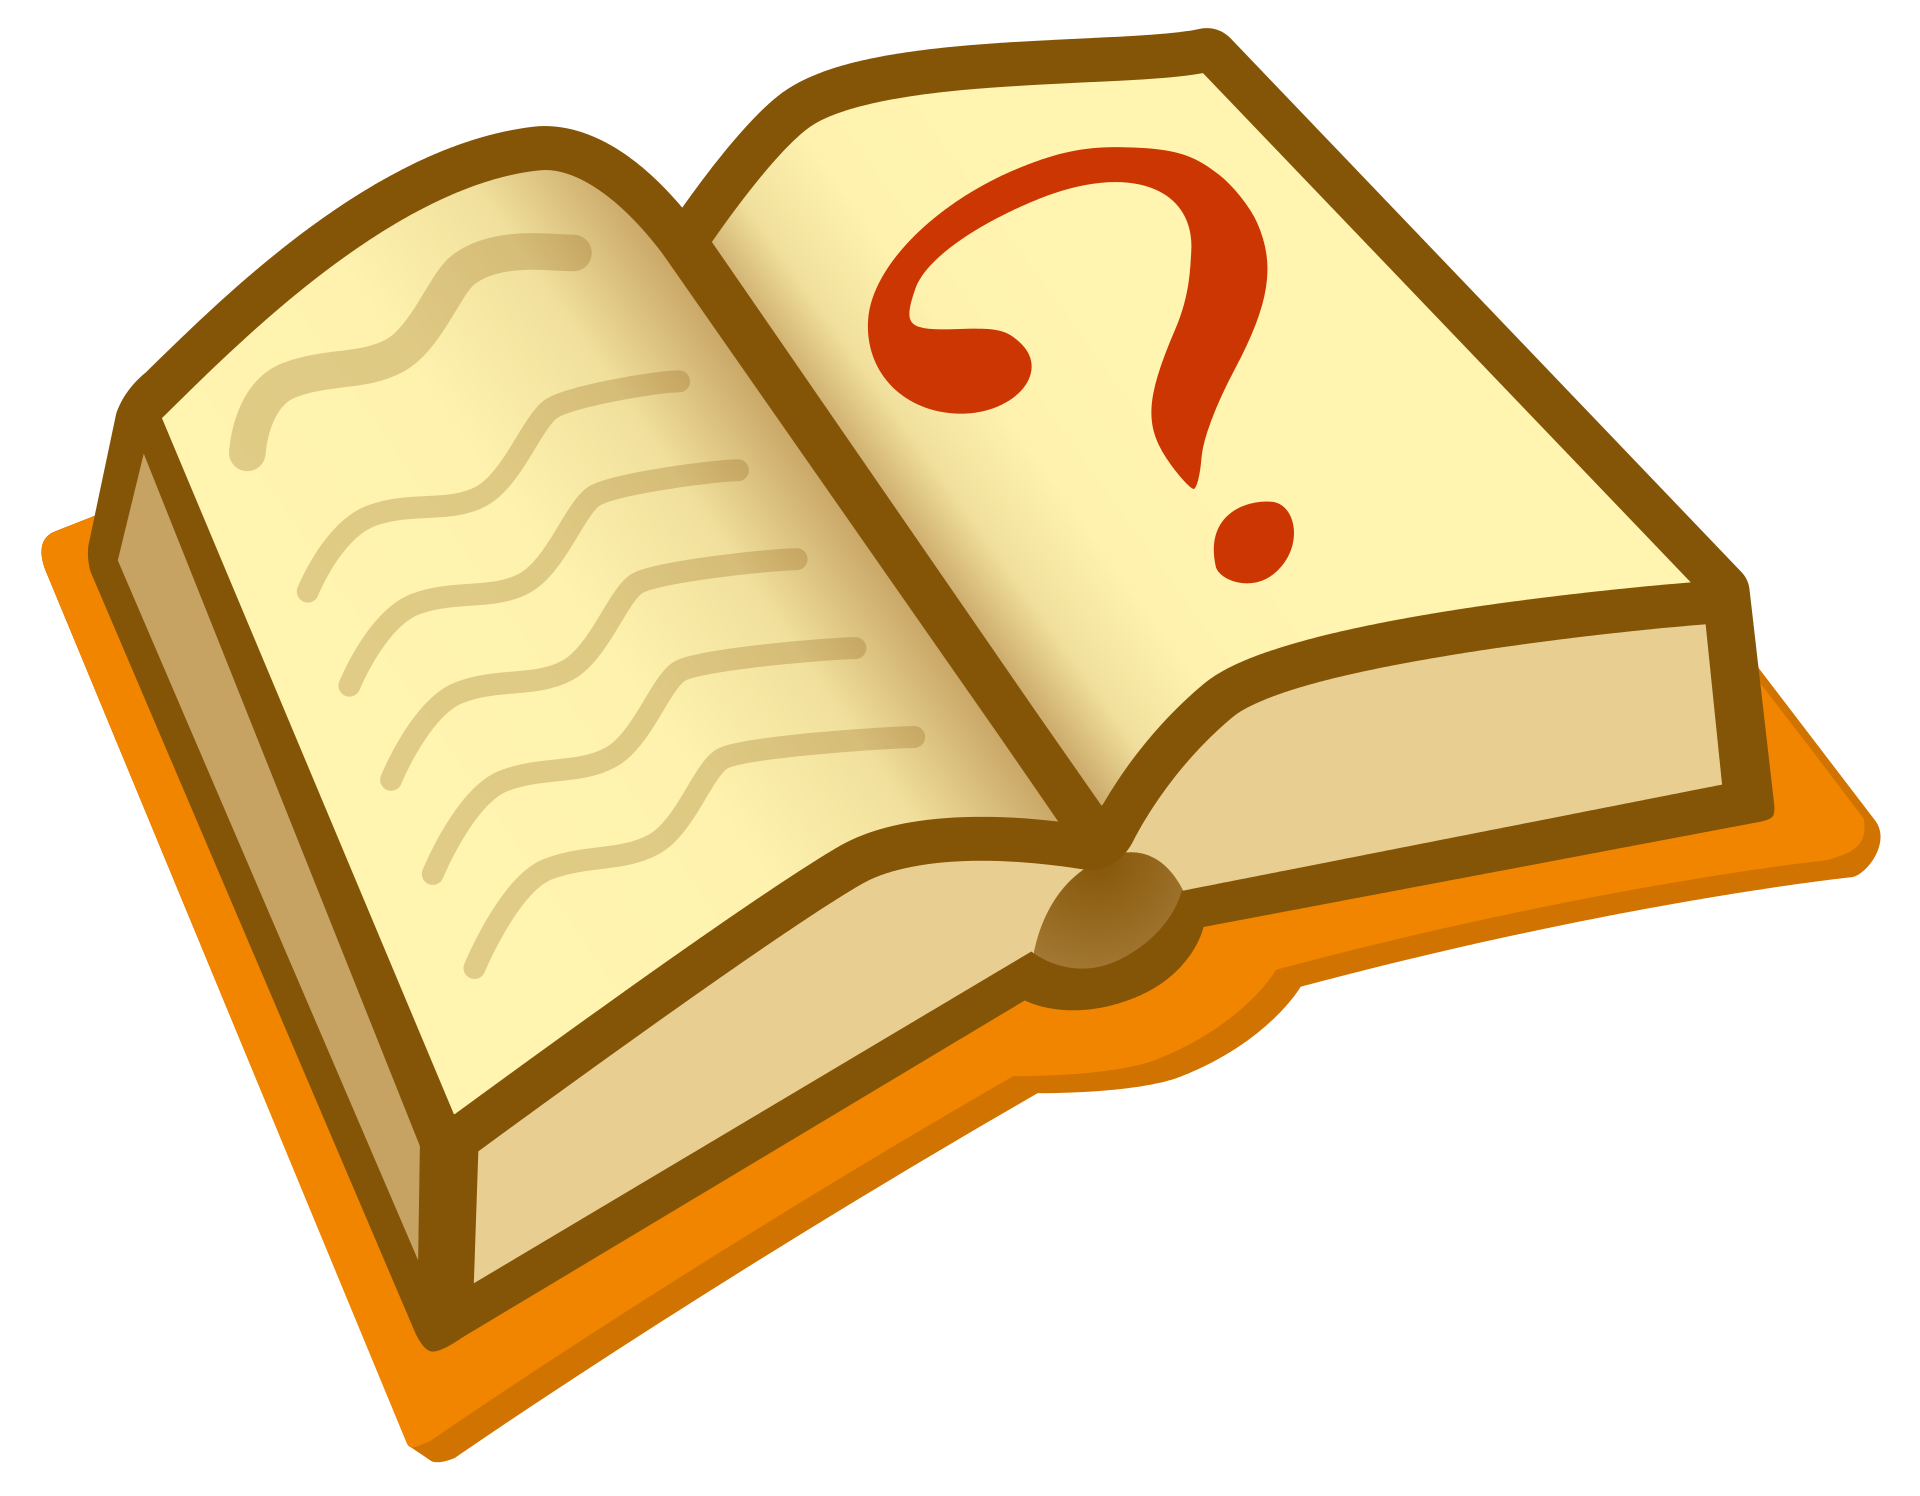 Knowledge clipart used book. Matterhorn wikipedia the free